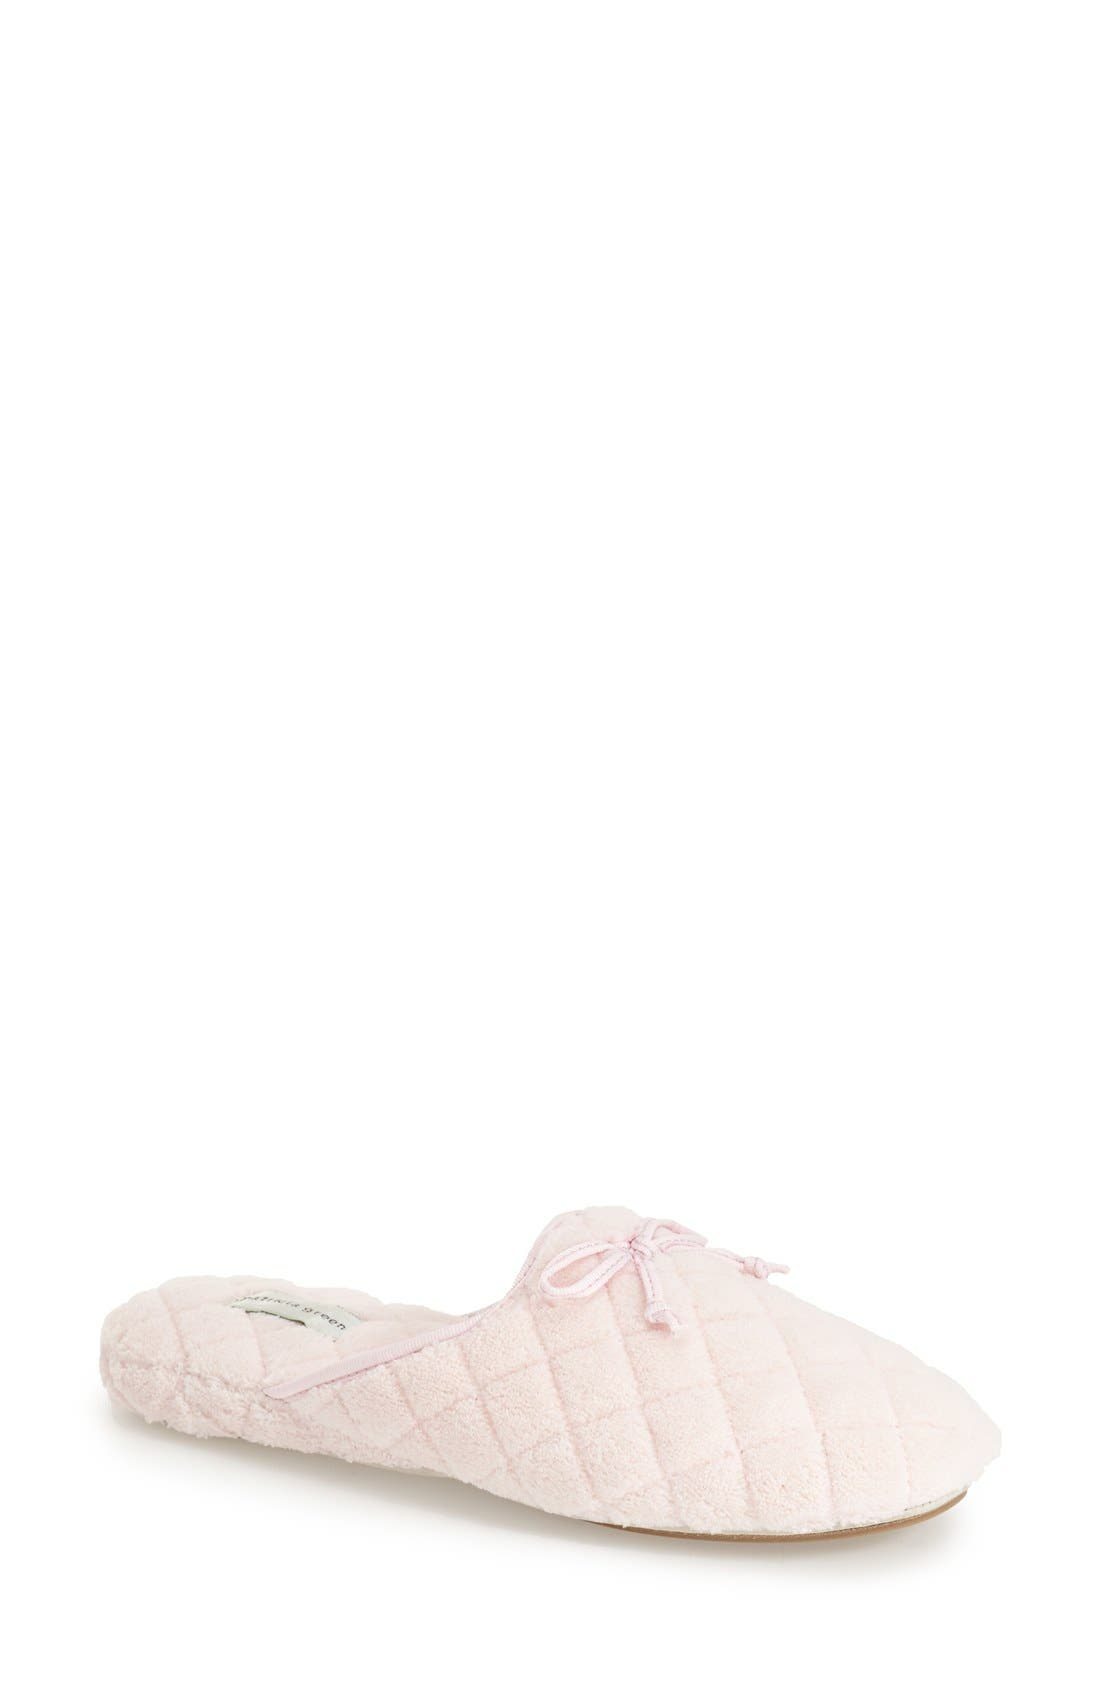 patricia green Chloe Slipper,                         Main,                         color, PINK